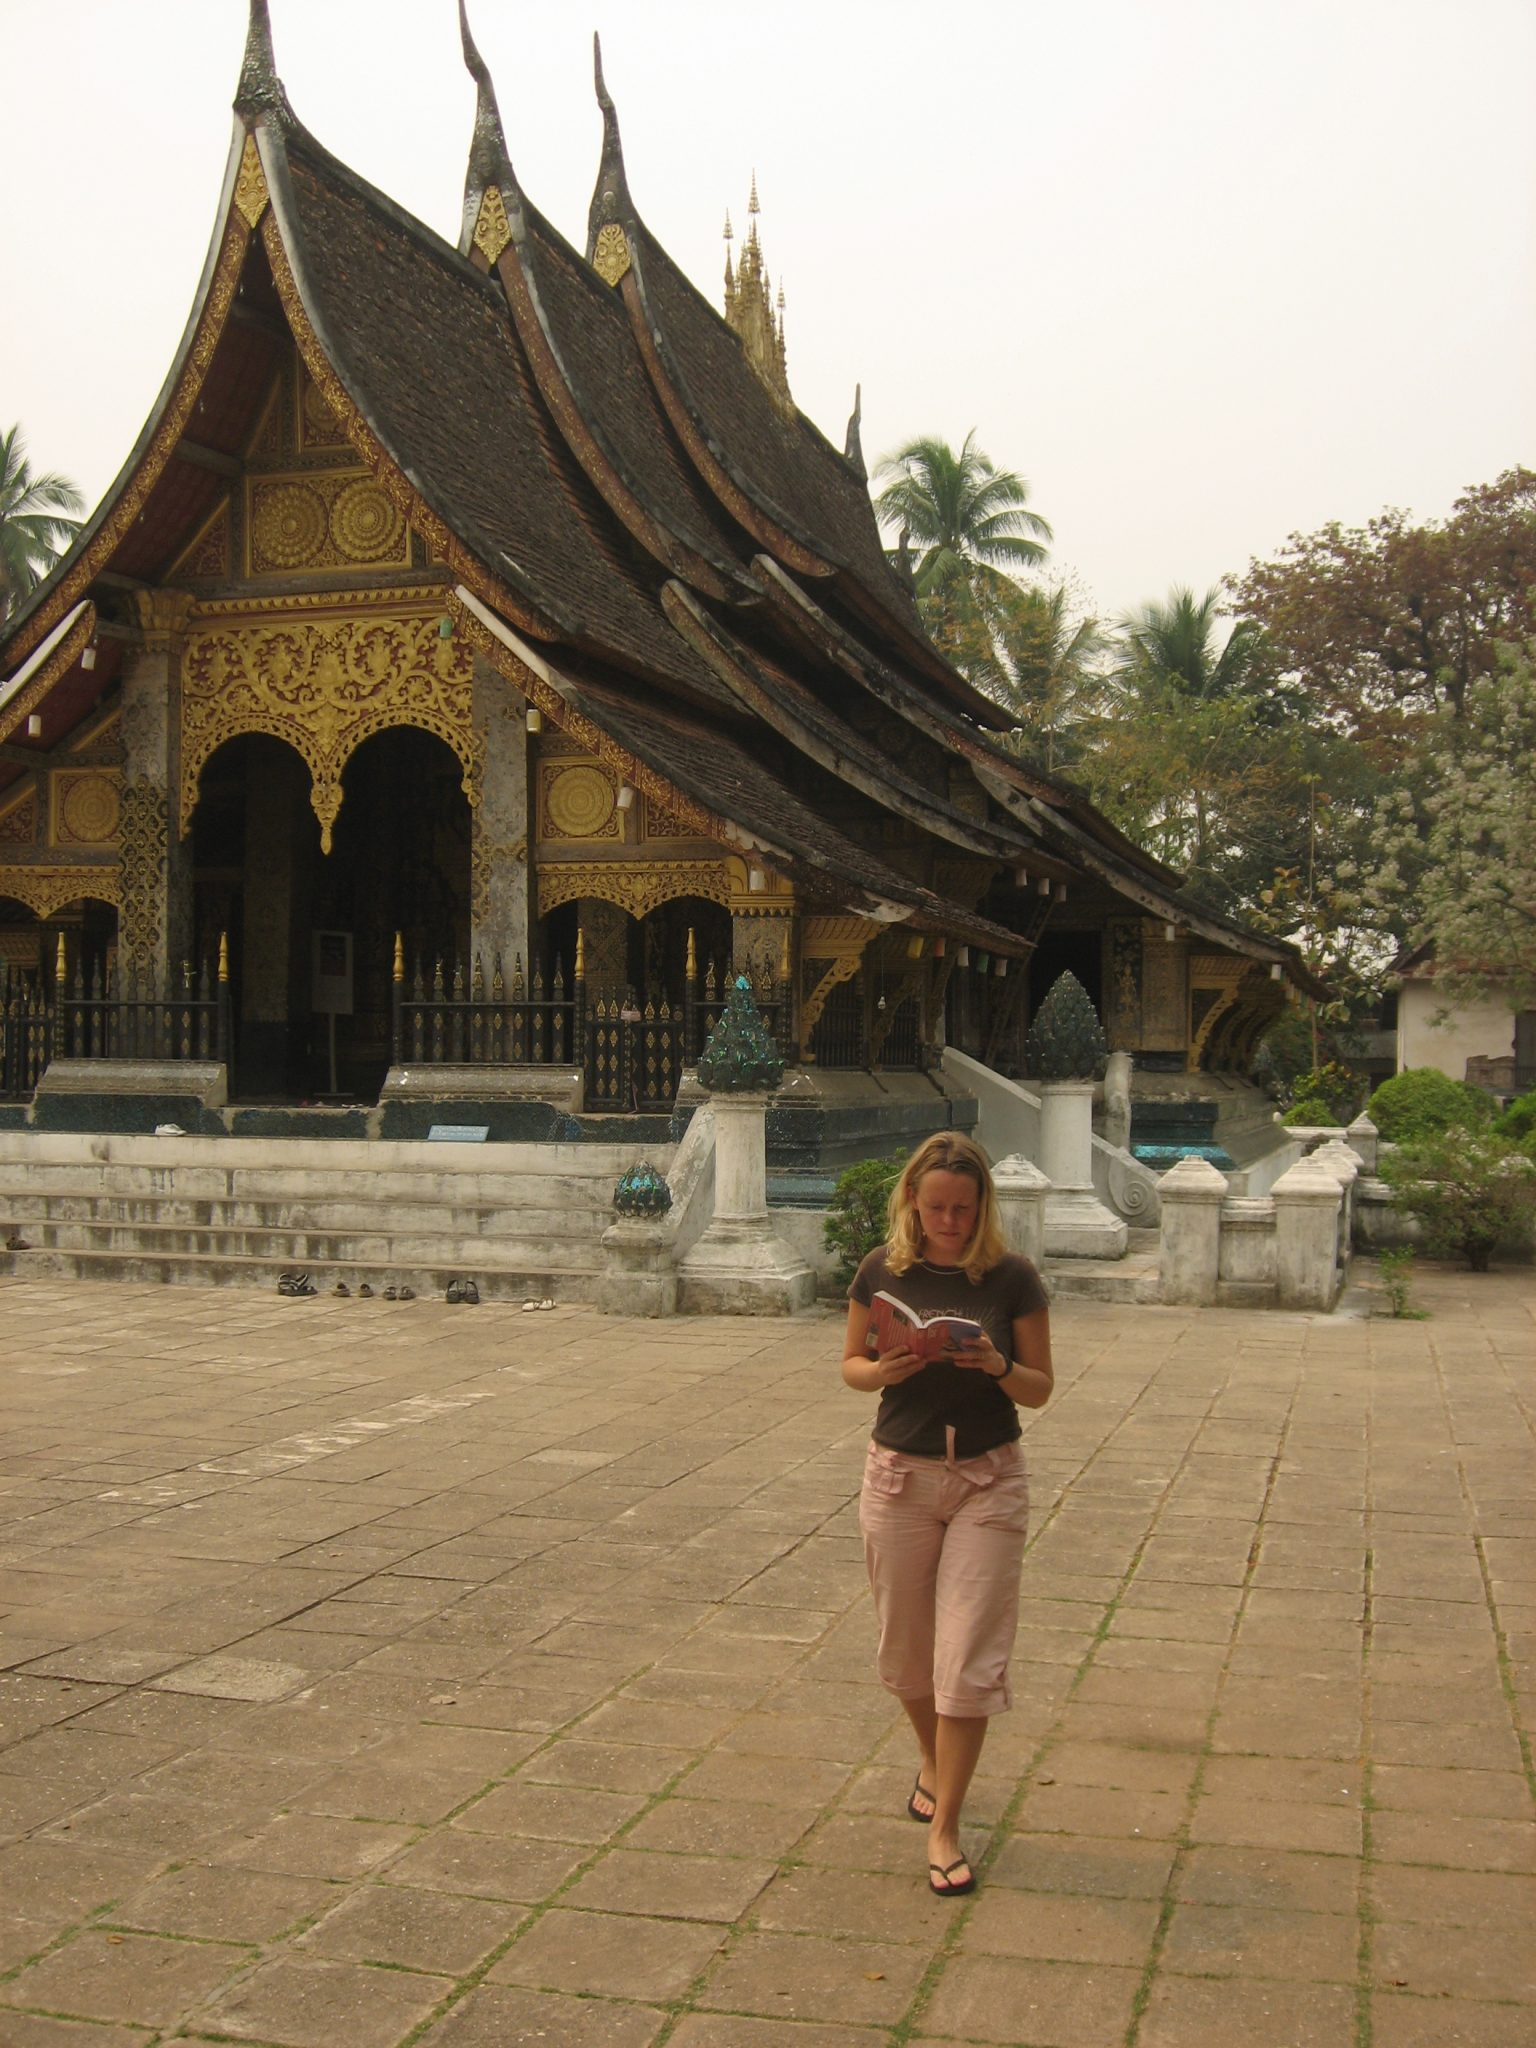 Into Laos and into last Month